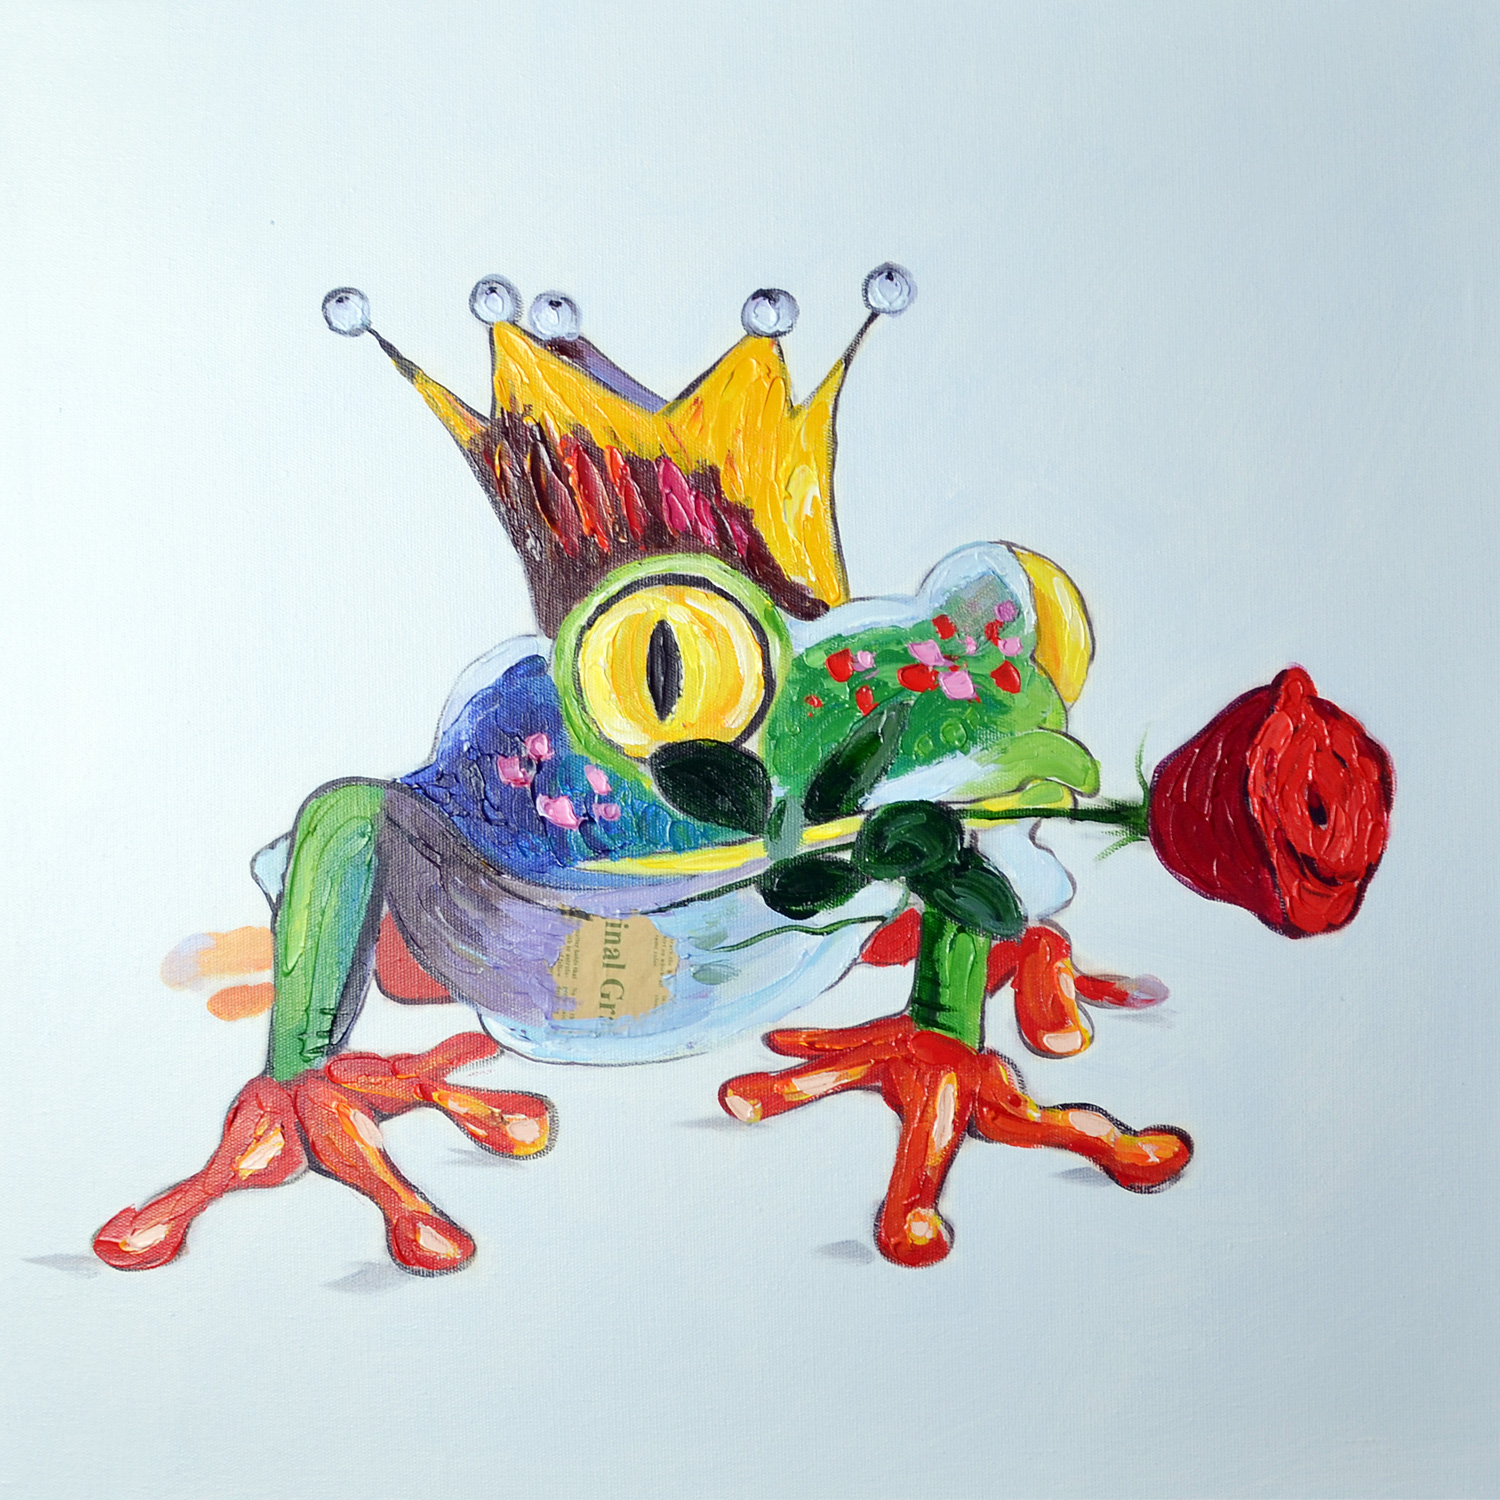 oil paintings Animal The Frog Prince on Canvas